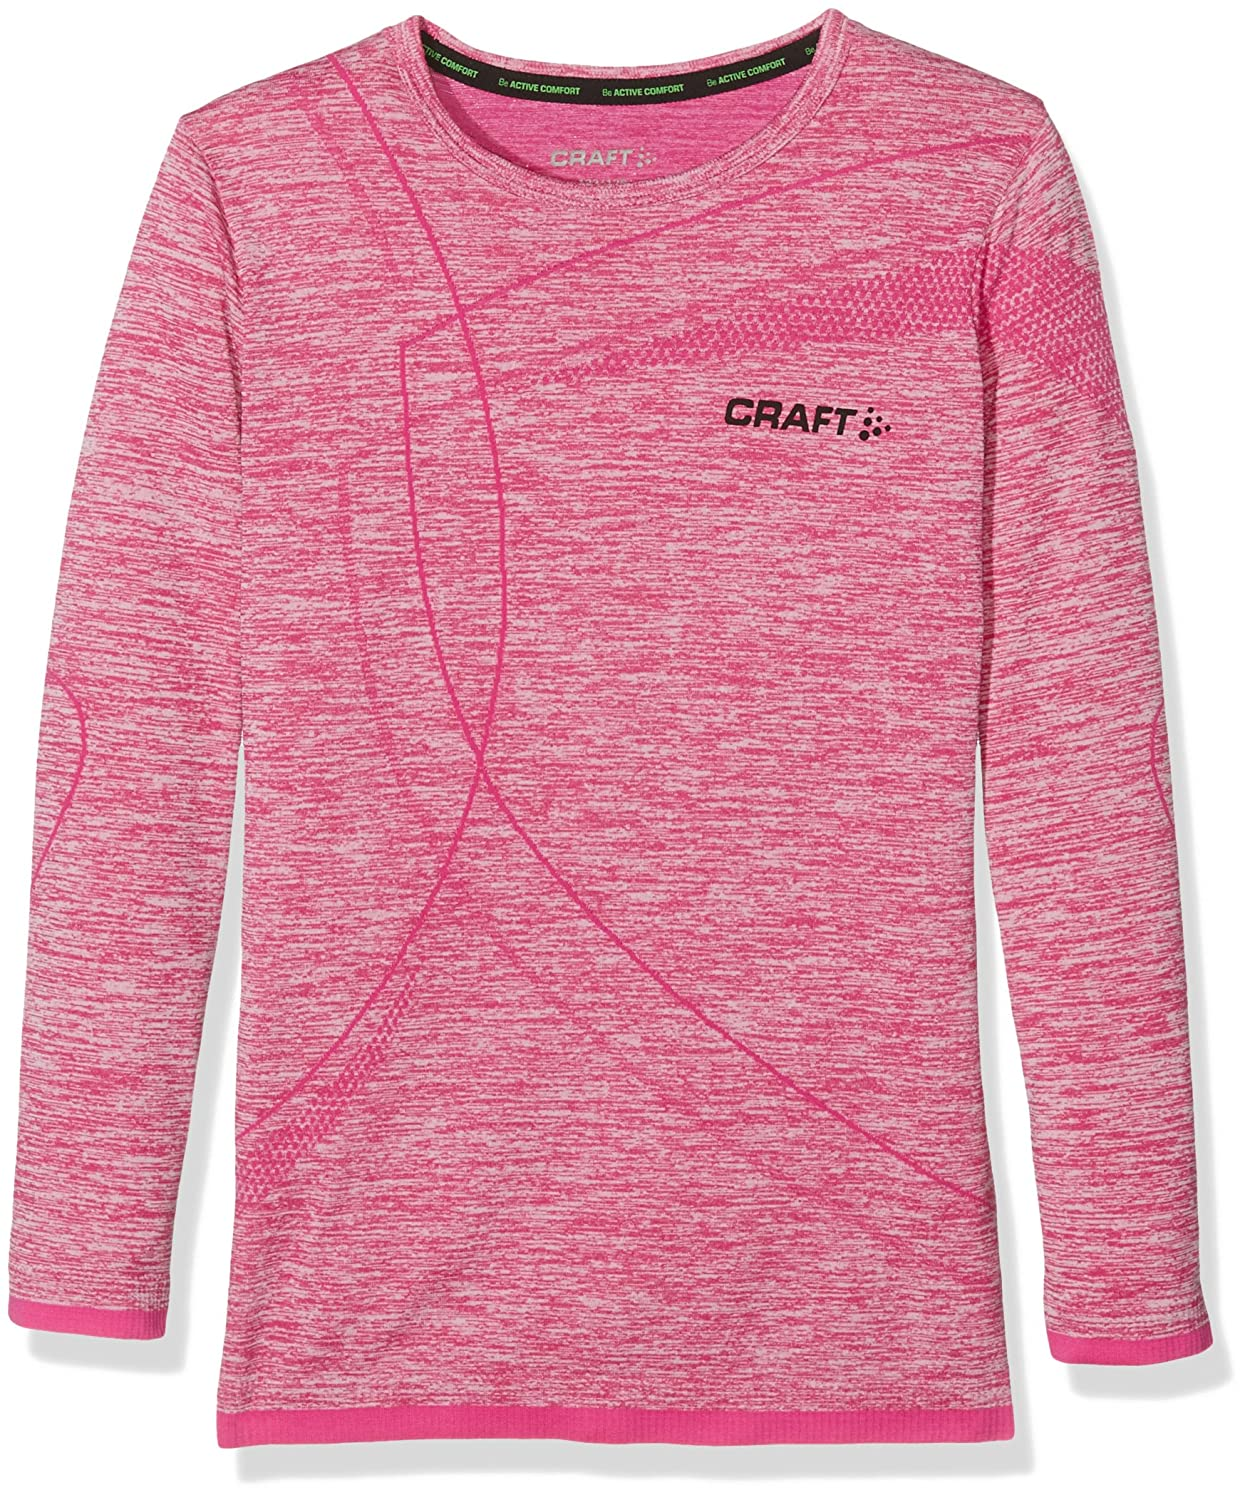 Craft Cross-Country/Running Mixed Kind, B403 Smoothie T-Shirt CRAF8|#Craft 1903777-B999